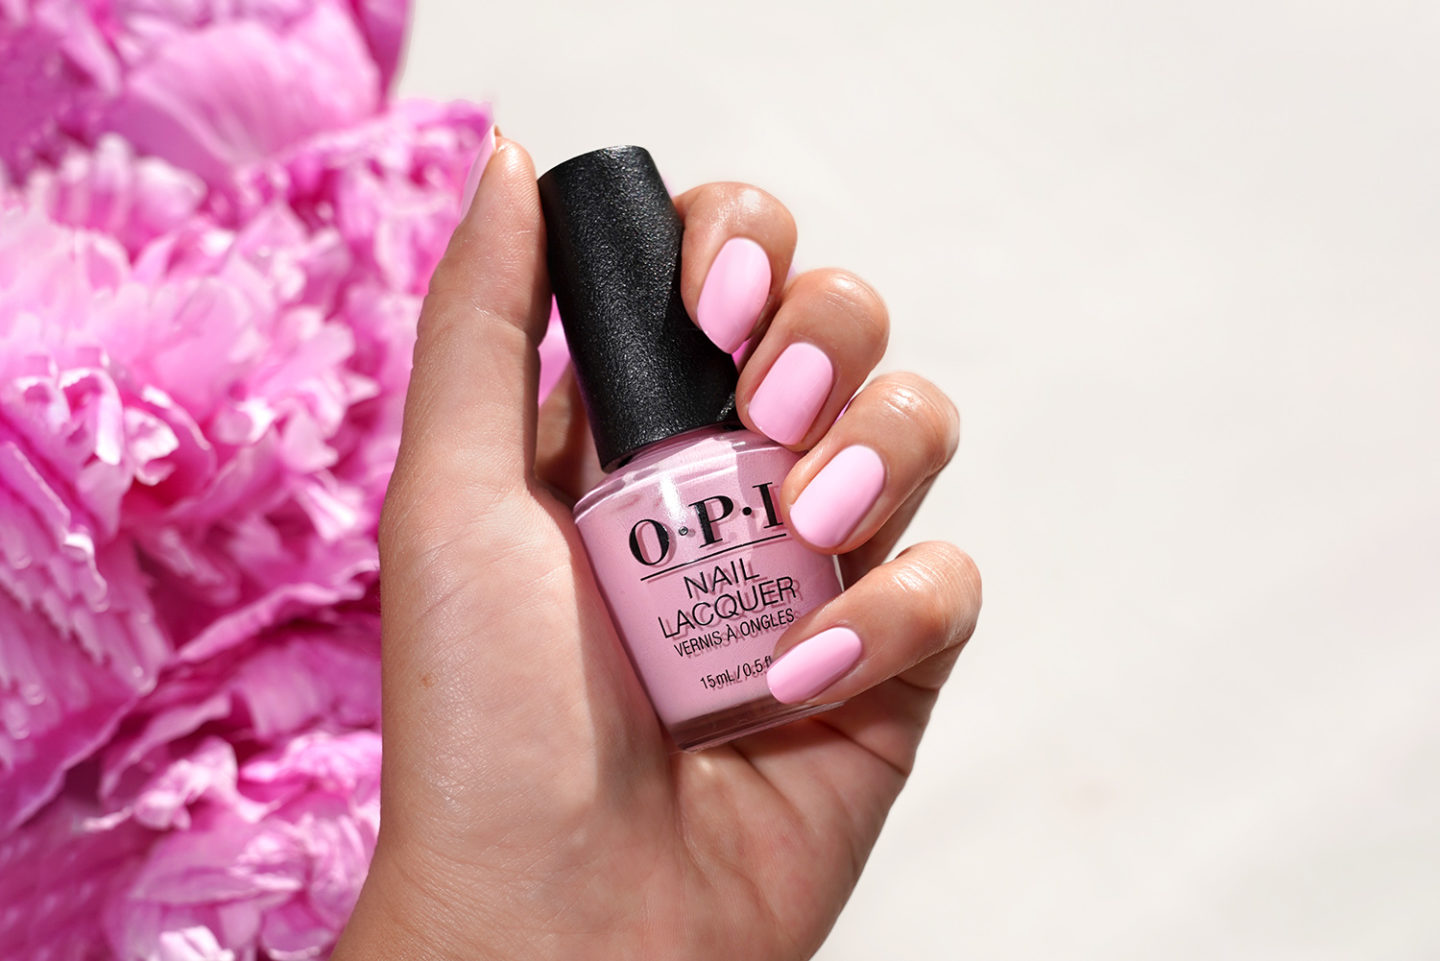 OPI Mod About You swatch